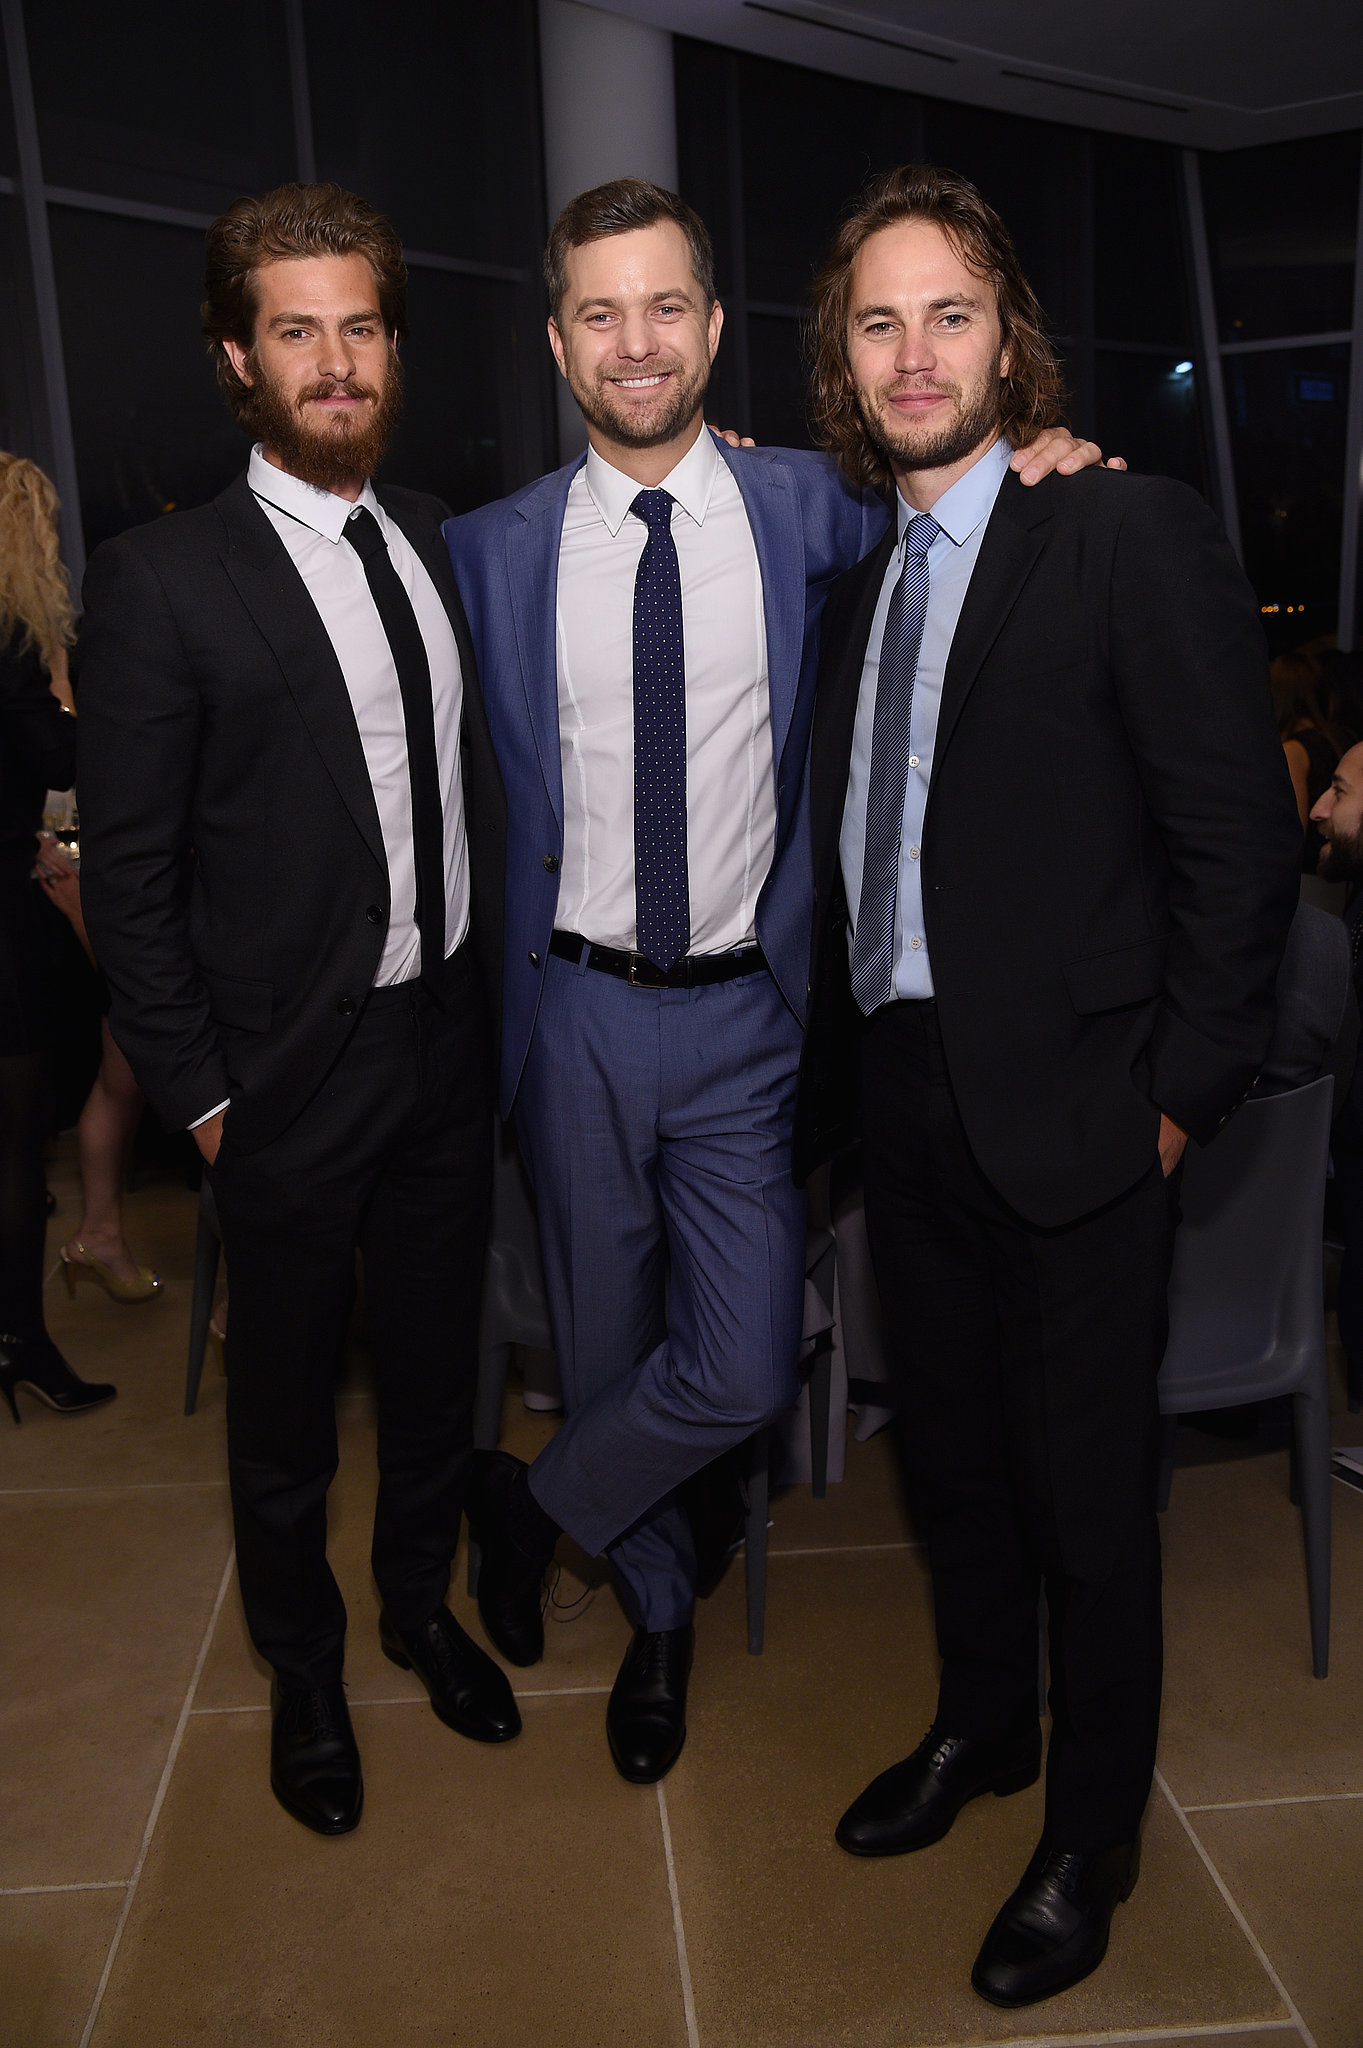 Photo of Taylor Kitsch & his friend actor  Andrew Garfield - United States